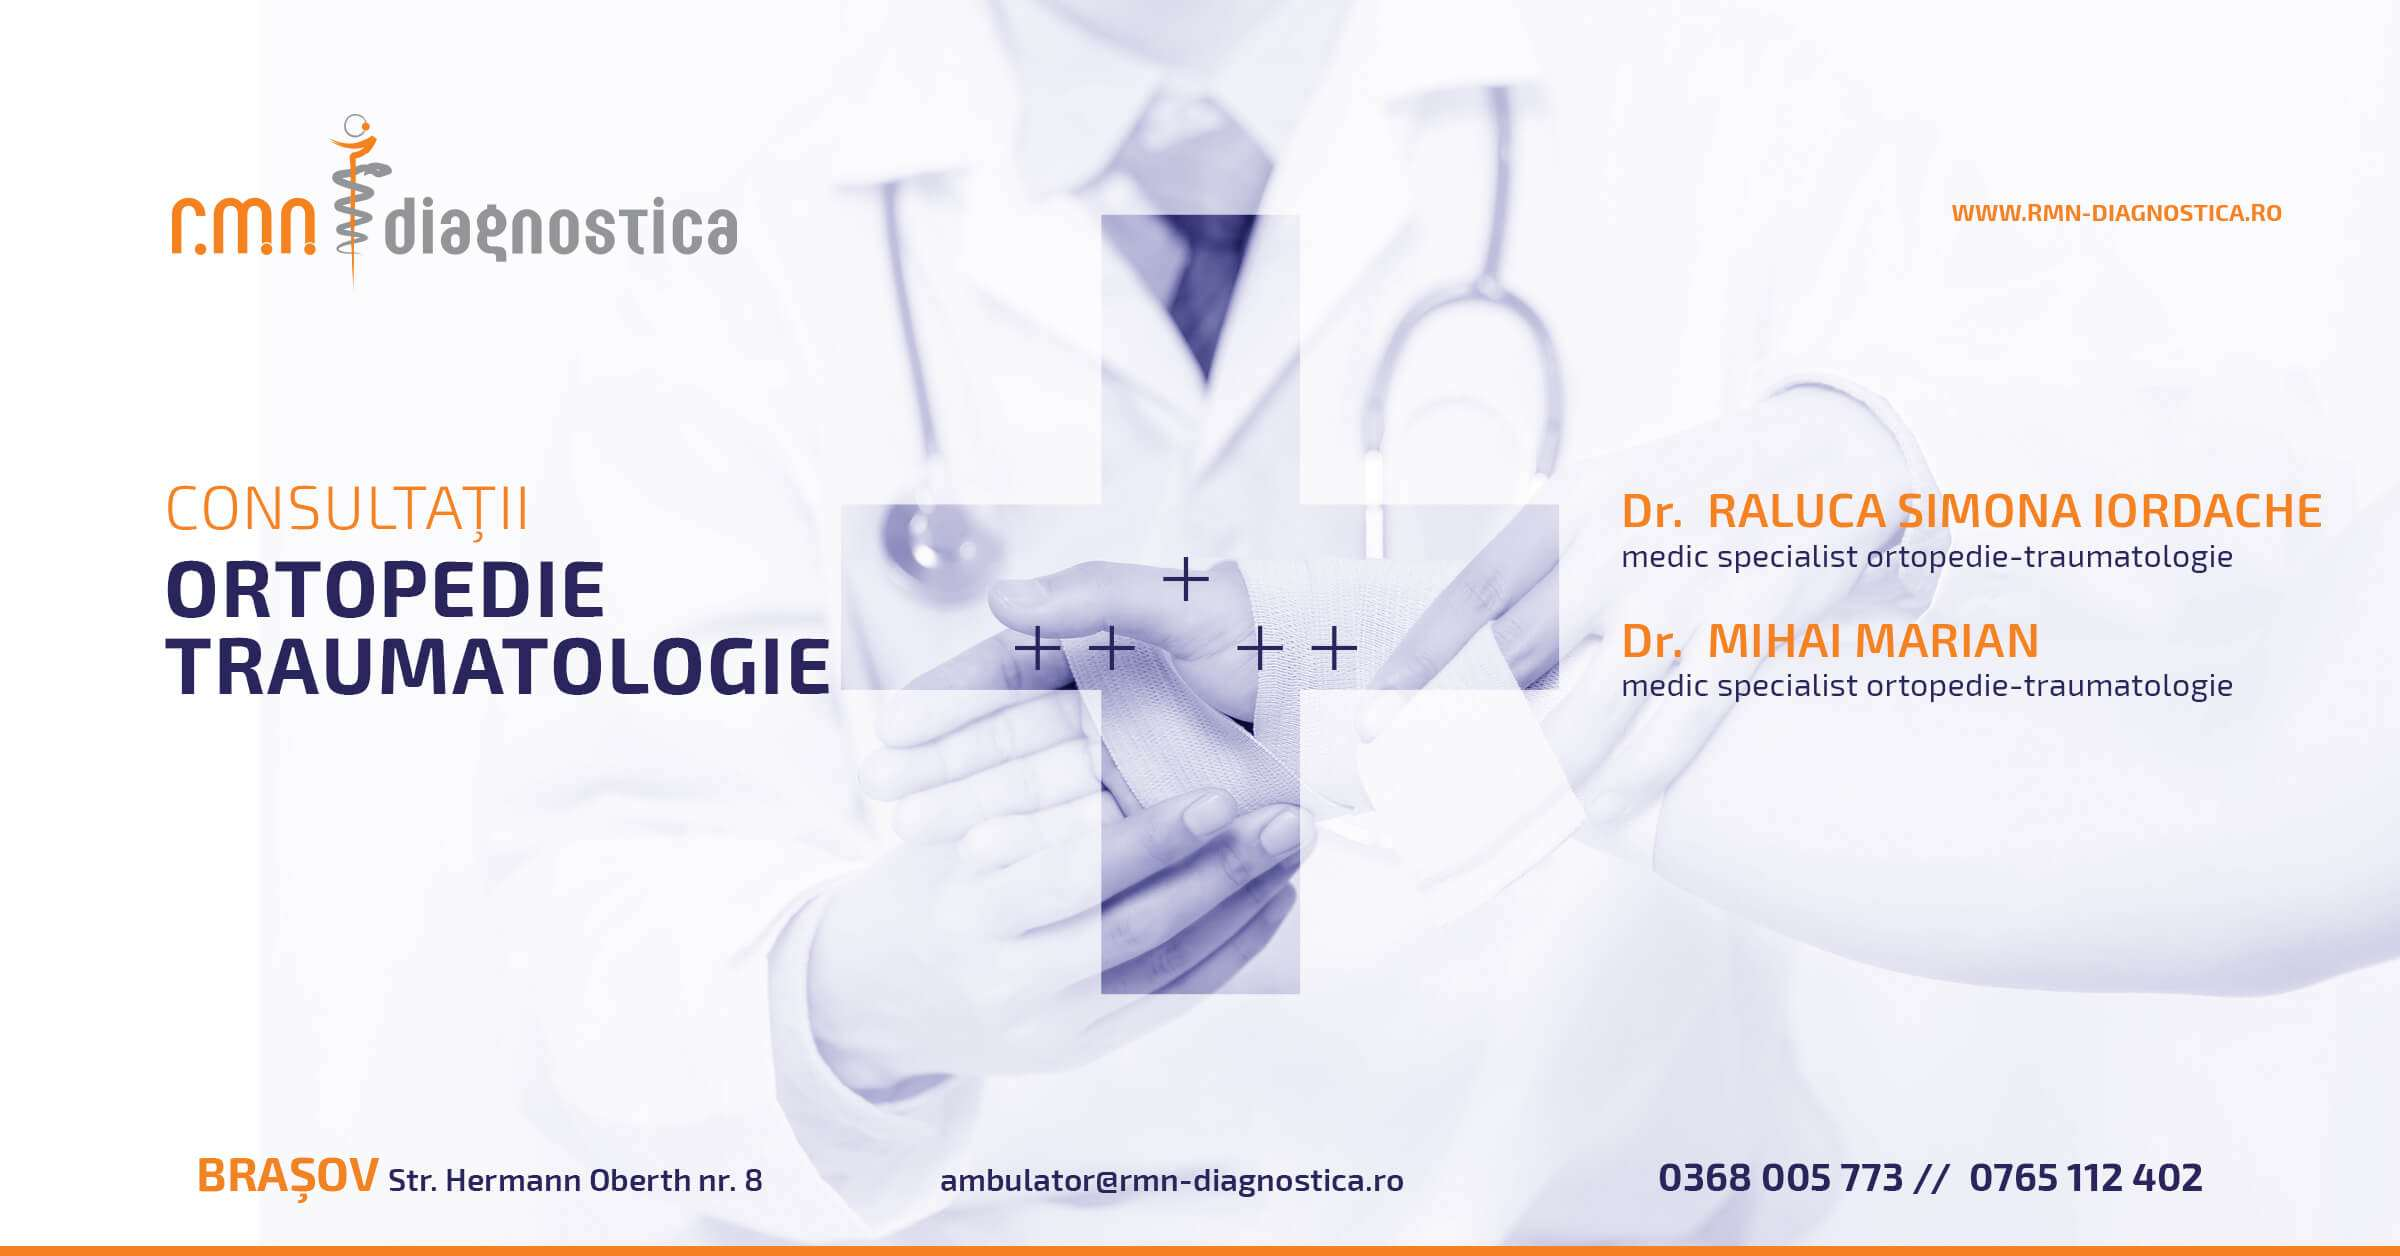 Ortopedie Traumatologie Brasov RMN Diagnostica